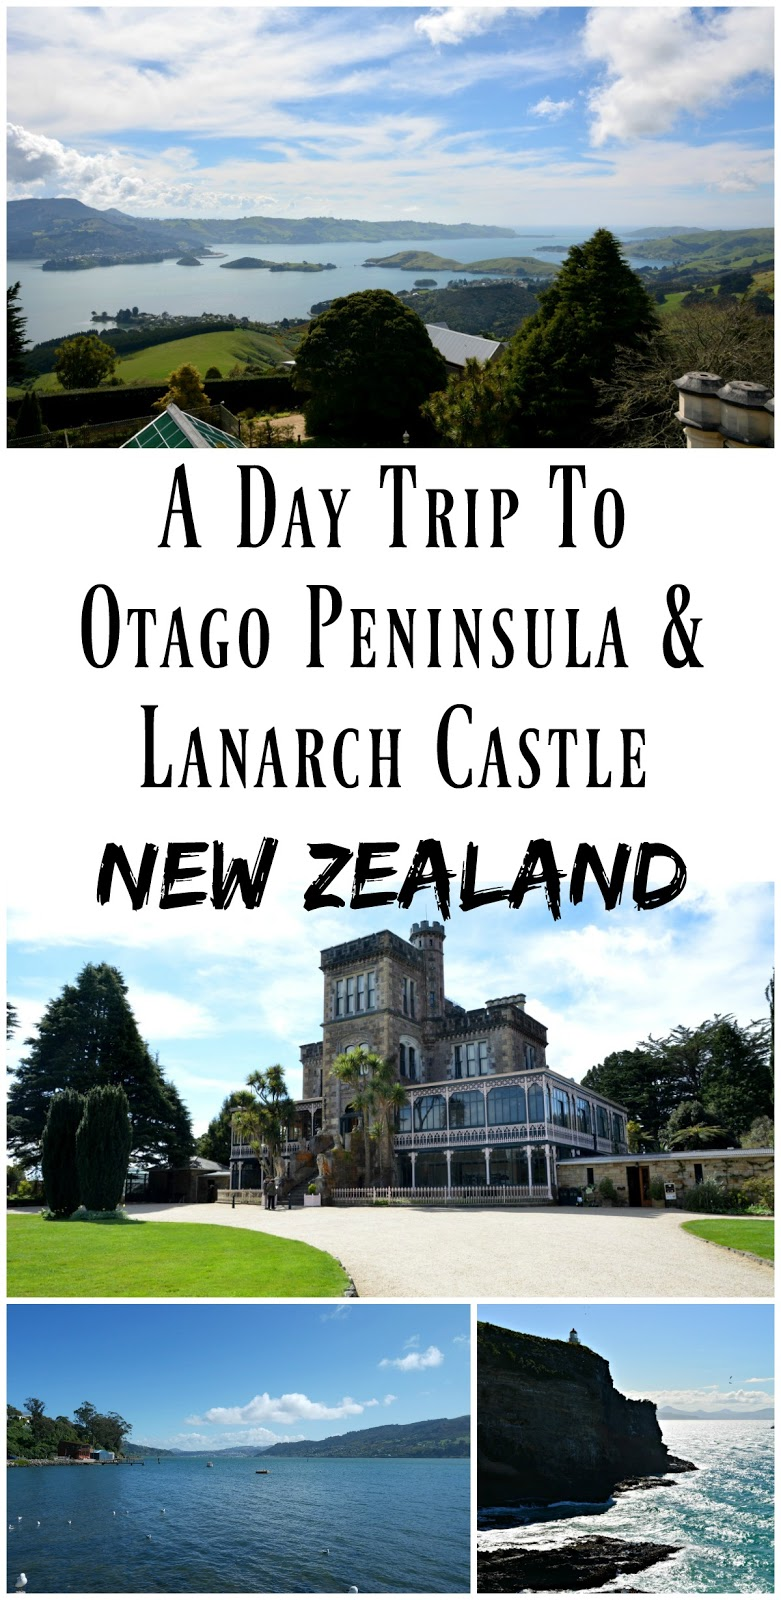 PIN FOR LATER: A day trip to the Otago Peninsula and Lanarch Castle in Dunedin, New Zealand.